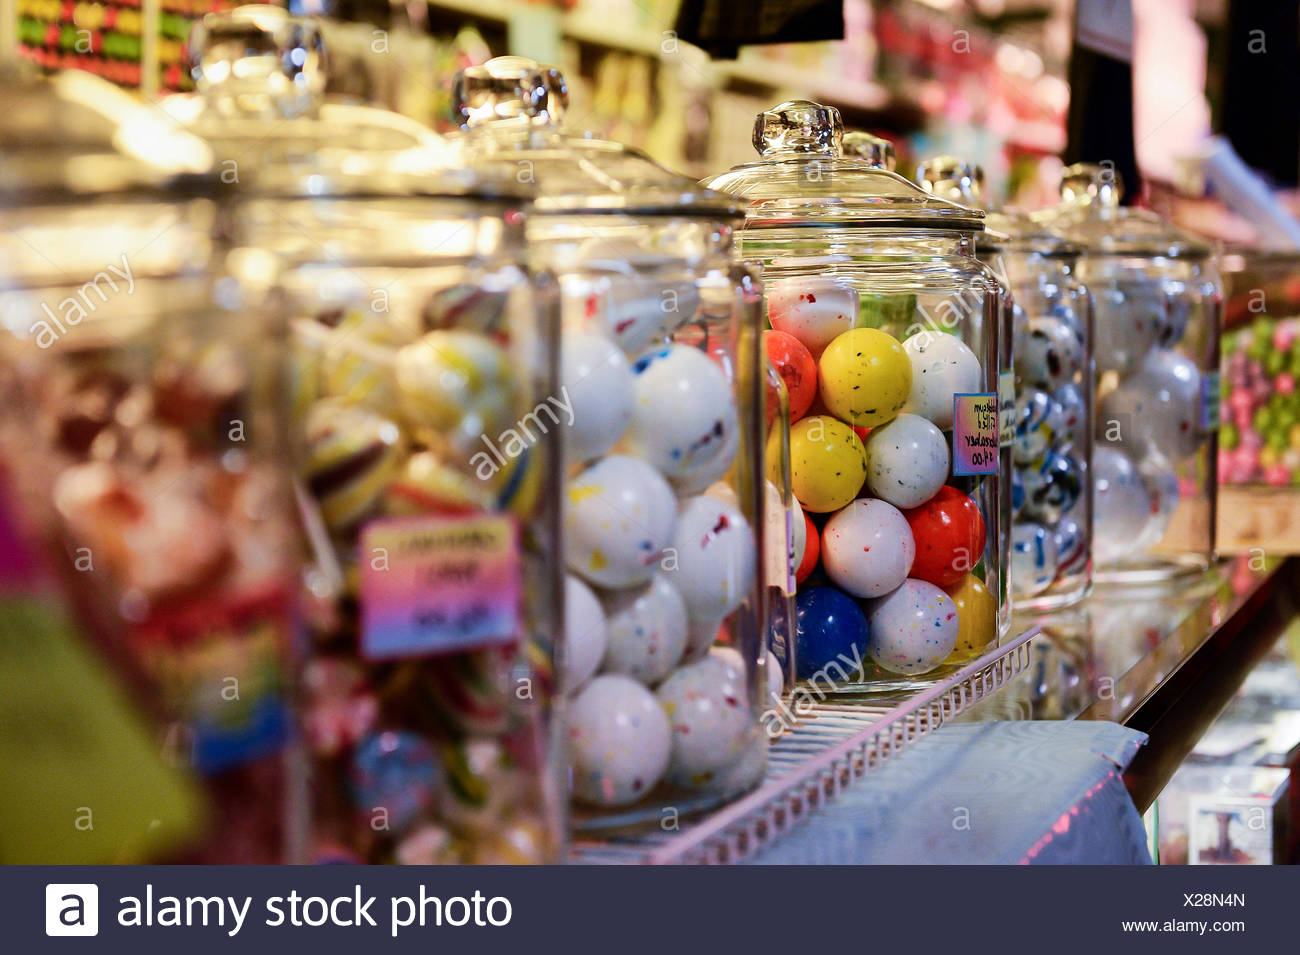 Jaw breakers in a candy store. - Stock Image